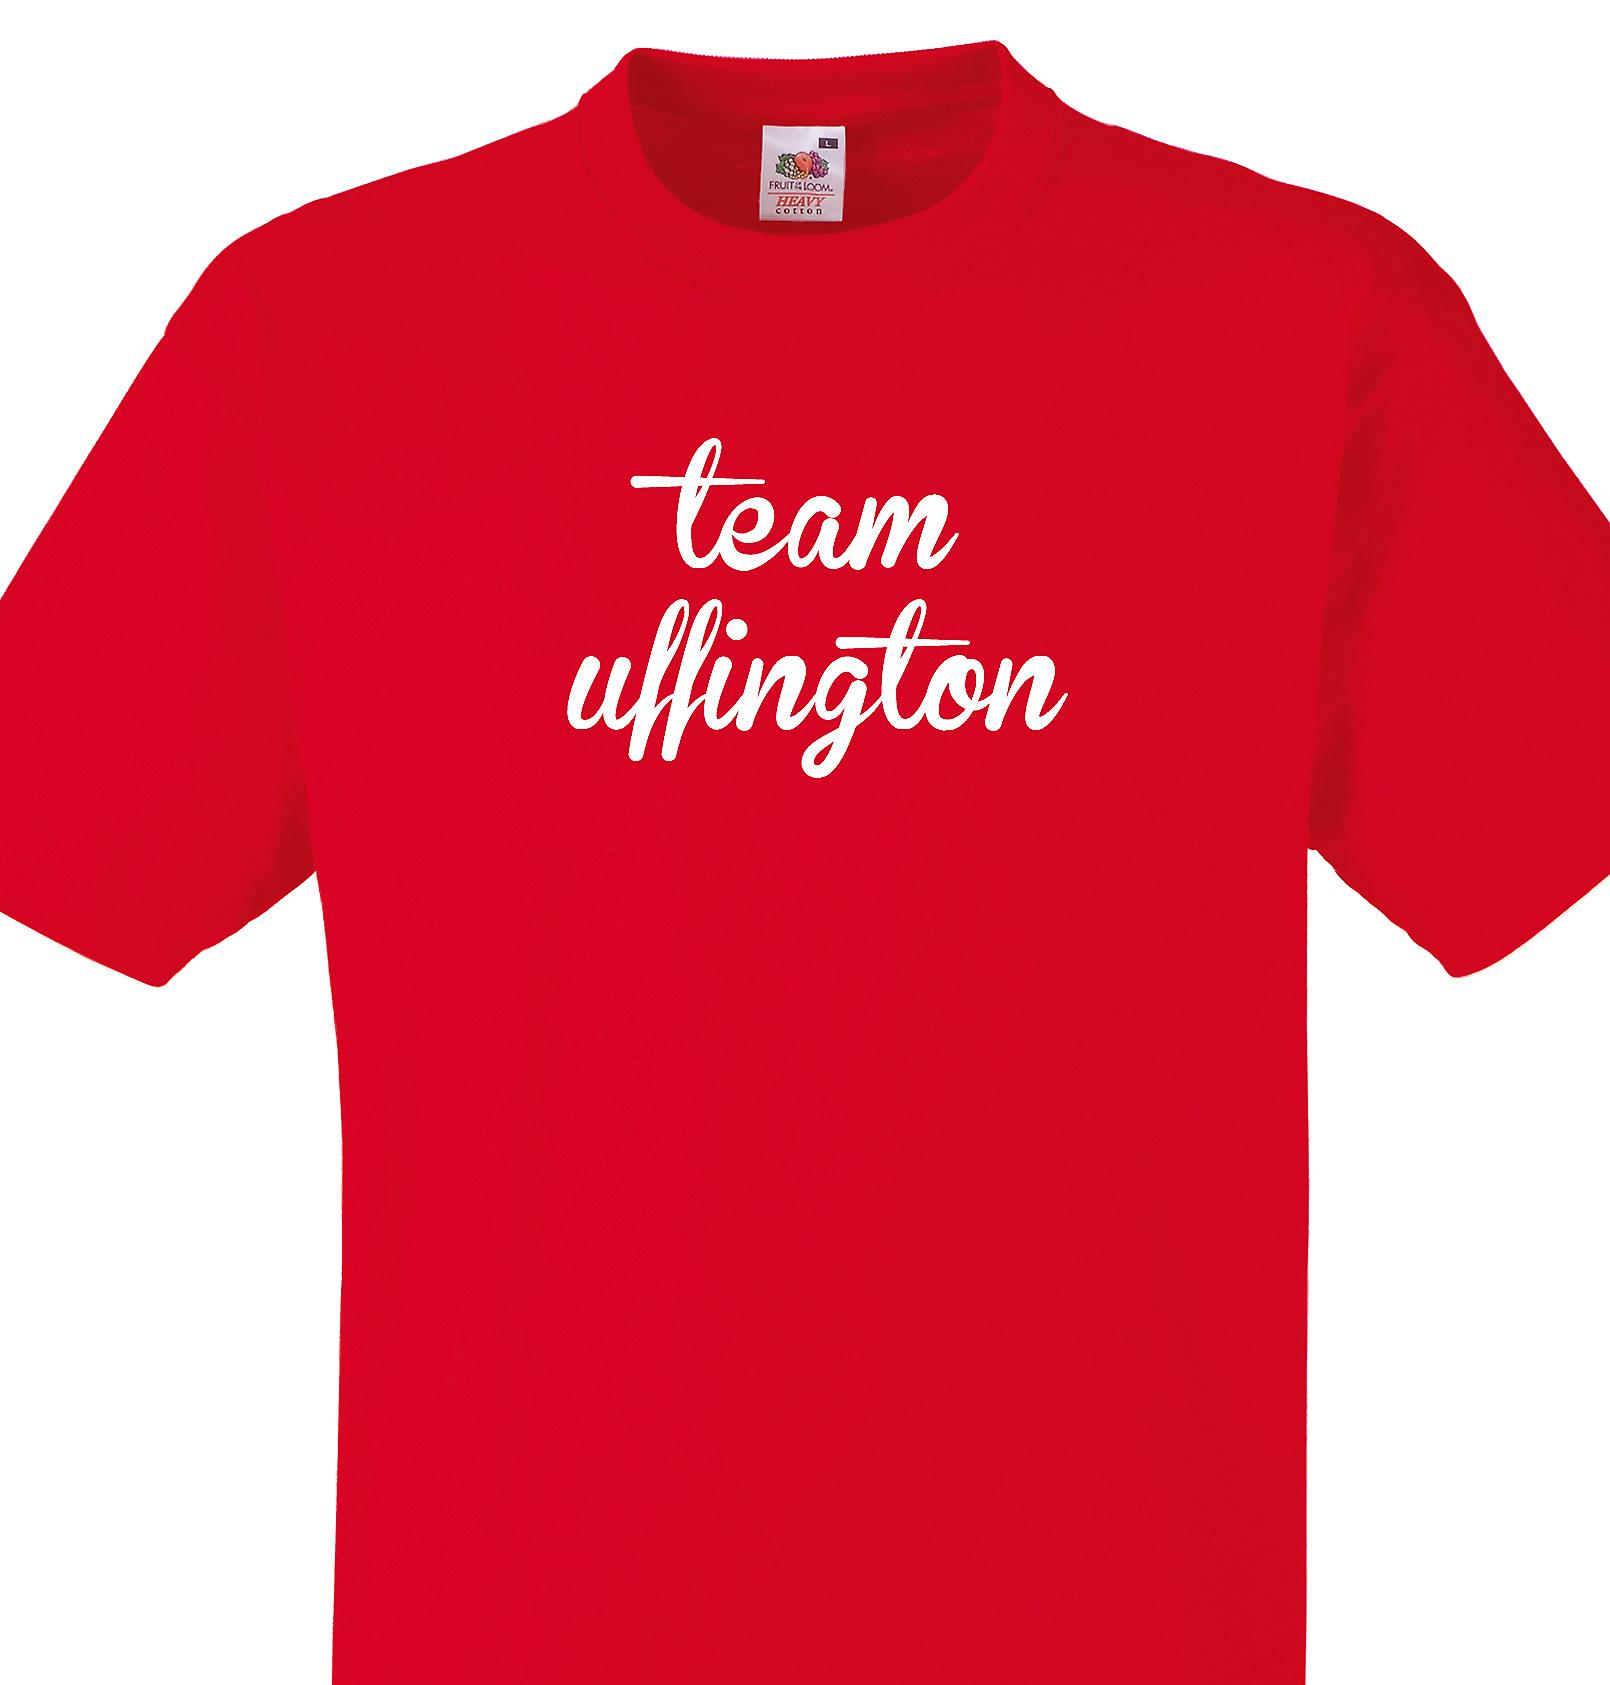 Team Uffington Red T shirt